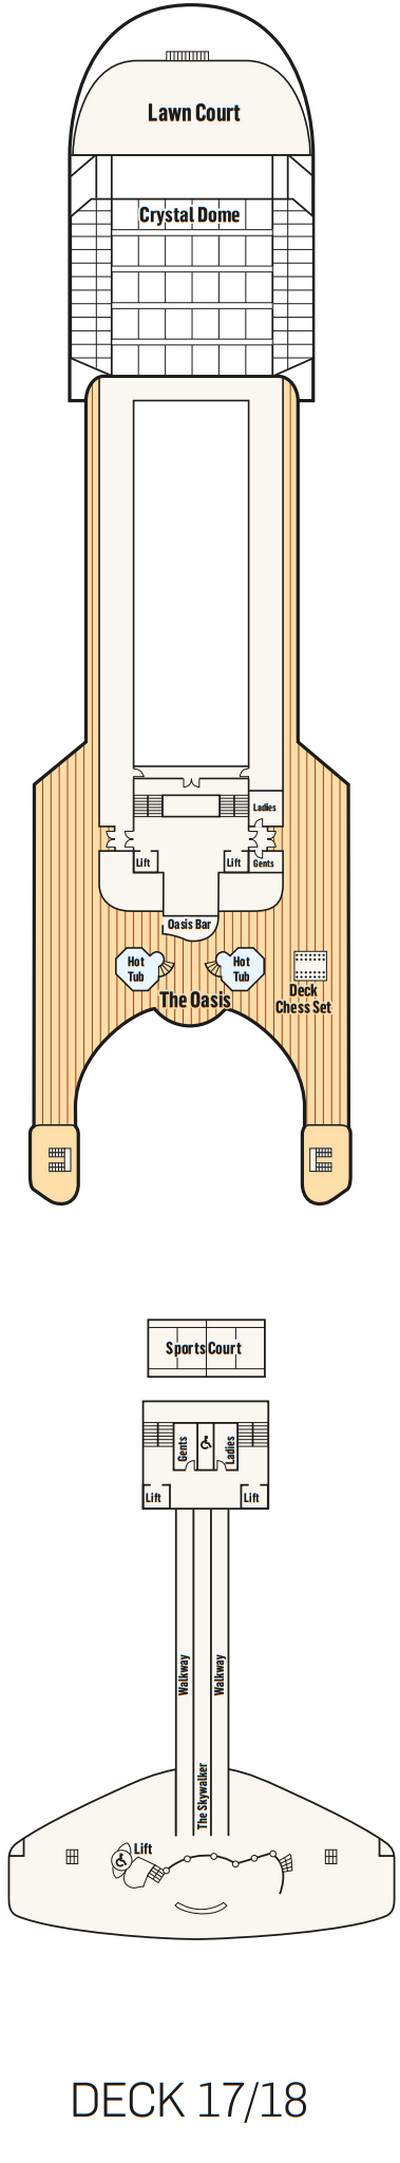 P&O - Pacific Adventure Deck 17 layout